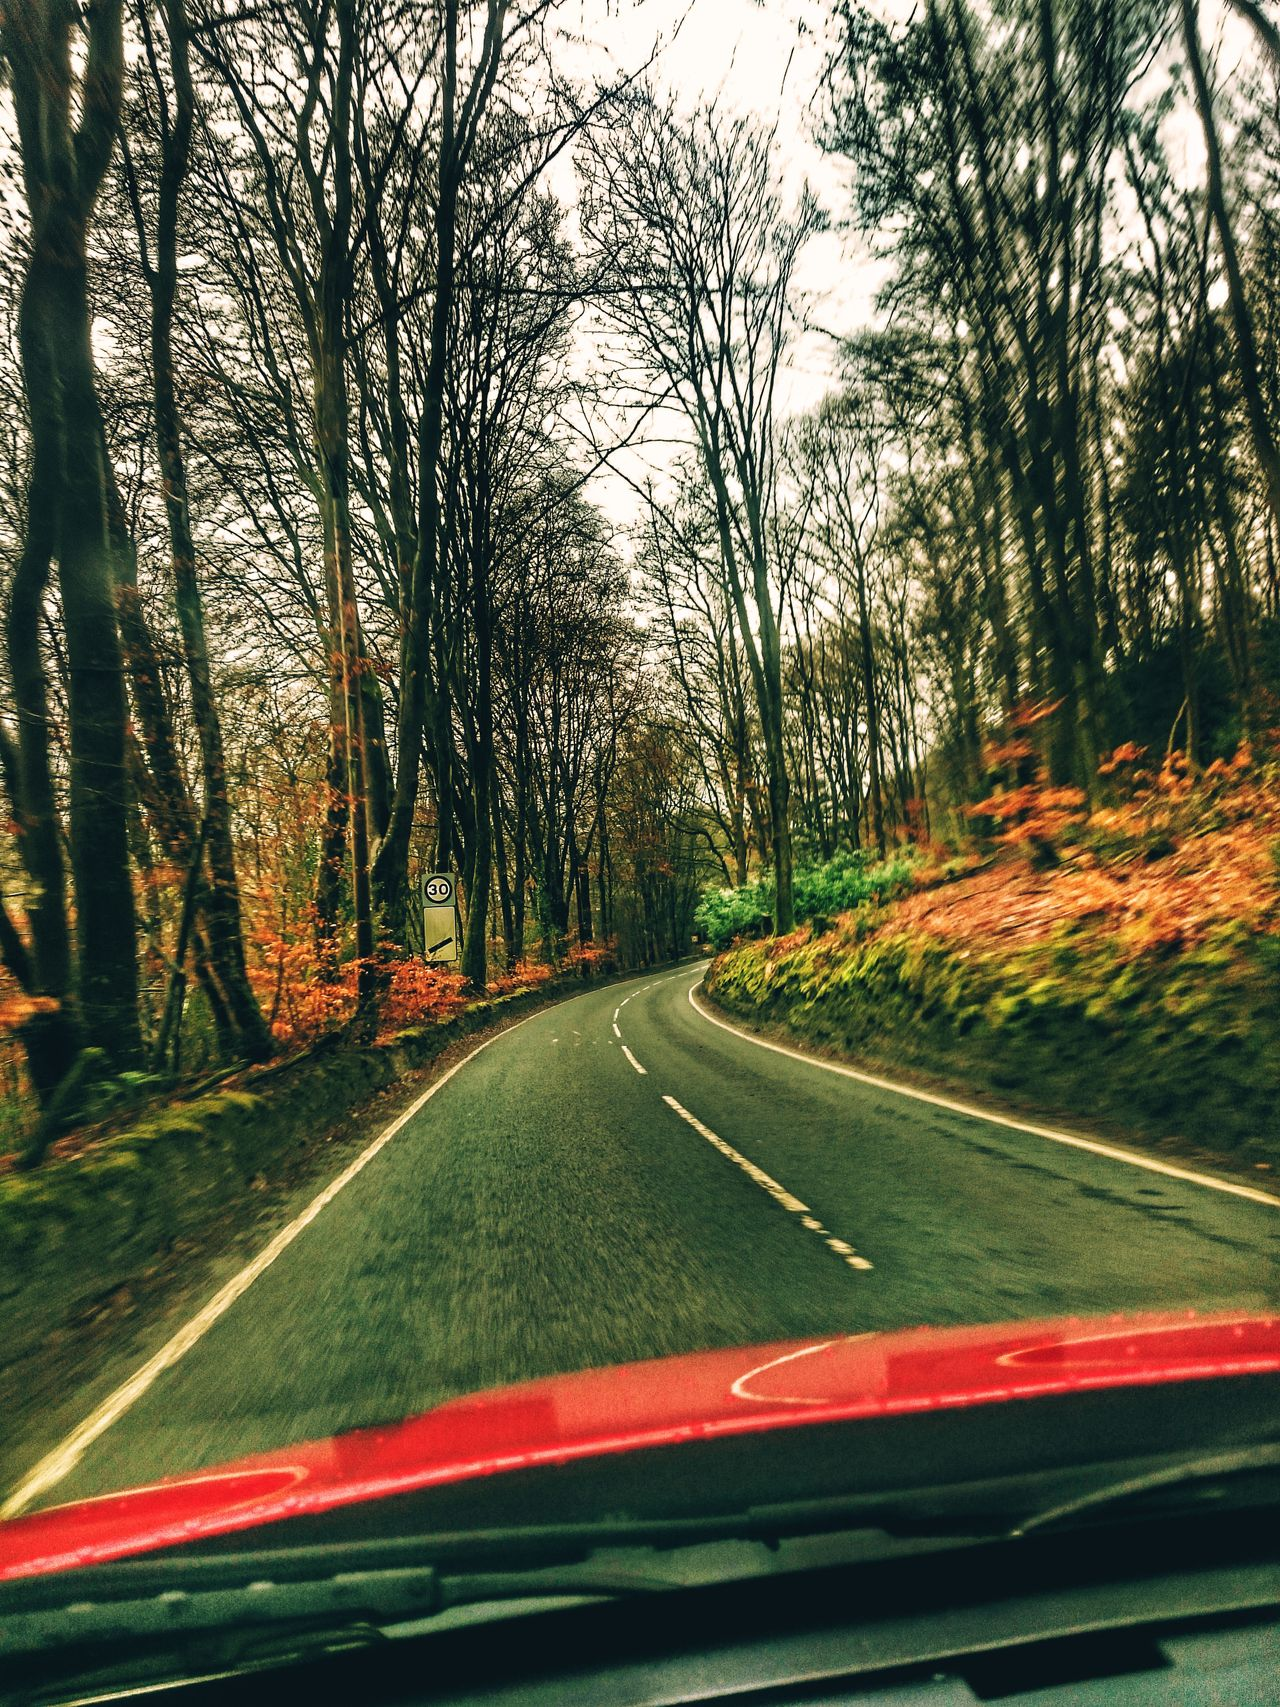 Tree Transportation Road Day Nature Outdoors Countryroadstakemehome Welsh Roads Wales Driving Home Country Lane Tree_collection  Downhill To The Right Bend Hidden Gems  For Friends That Connect